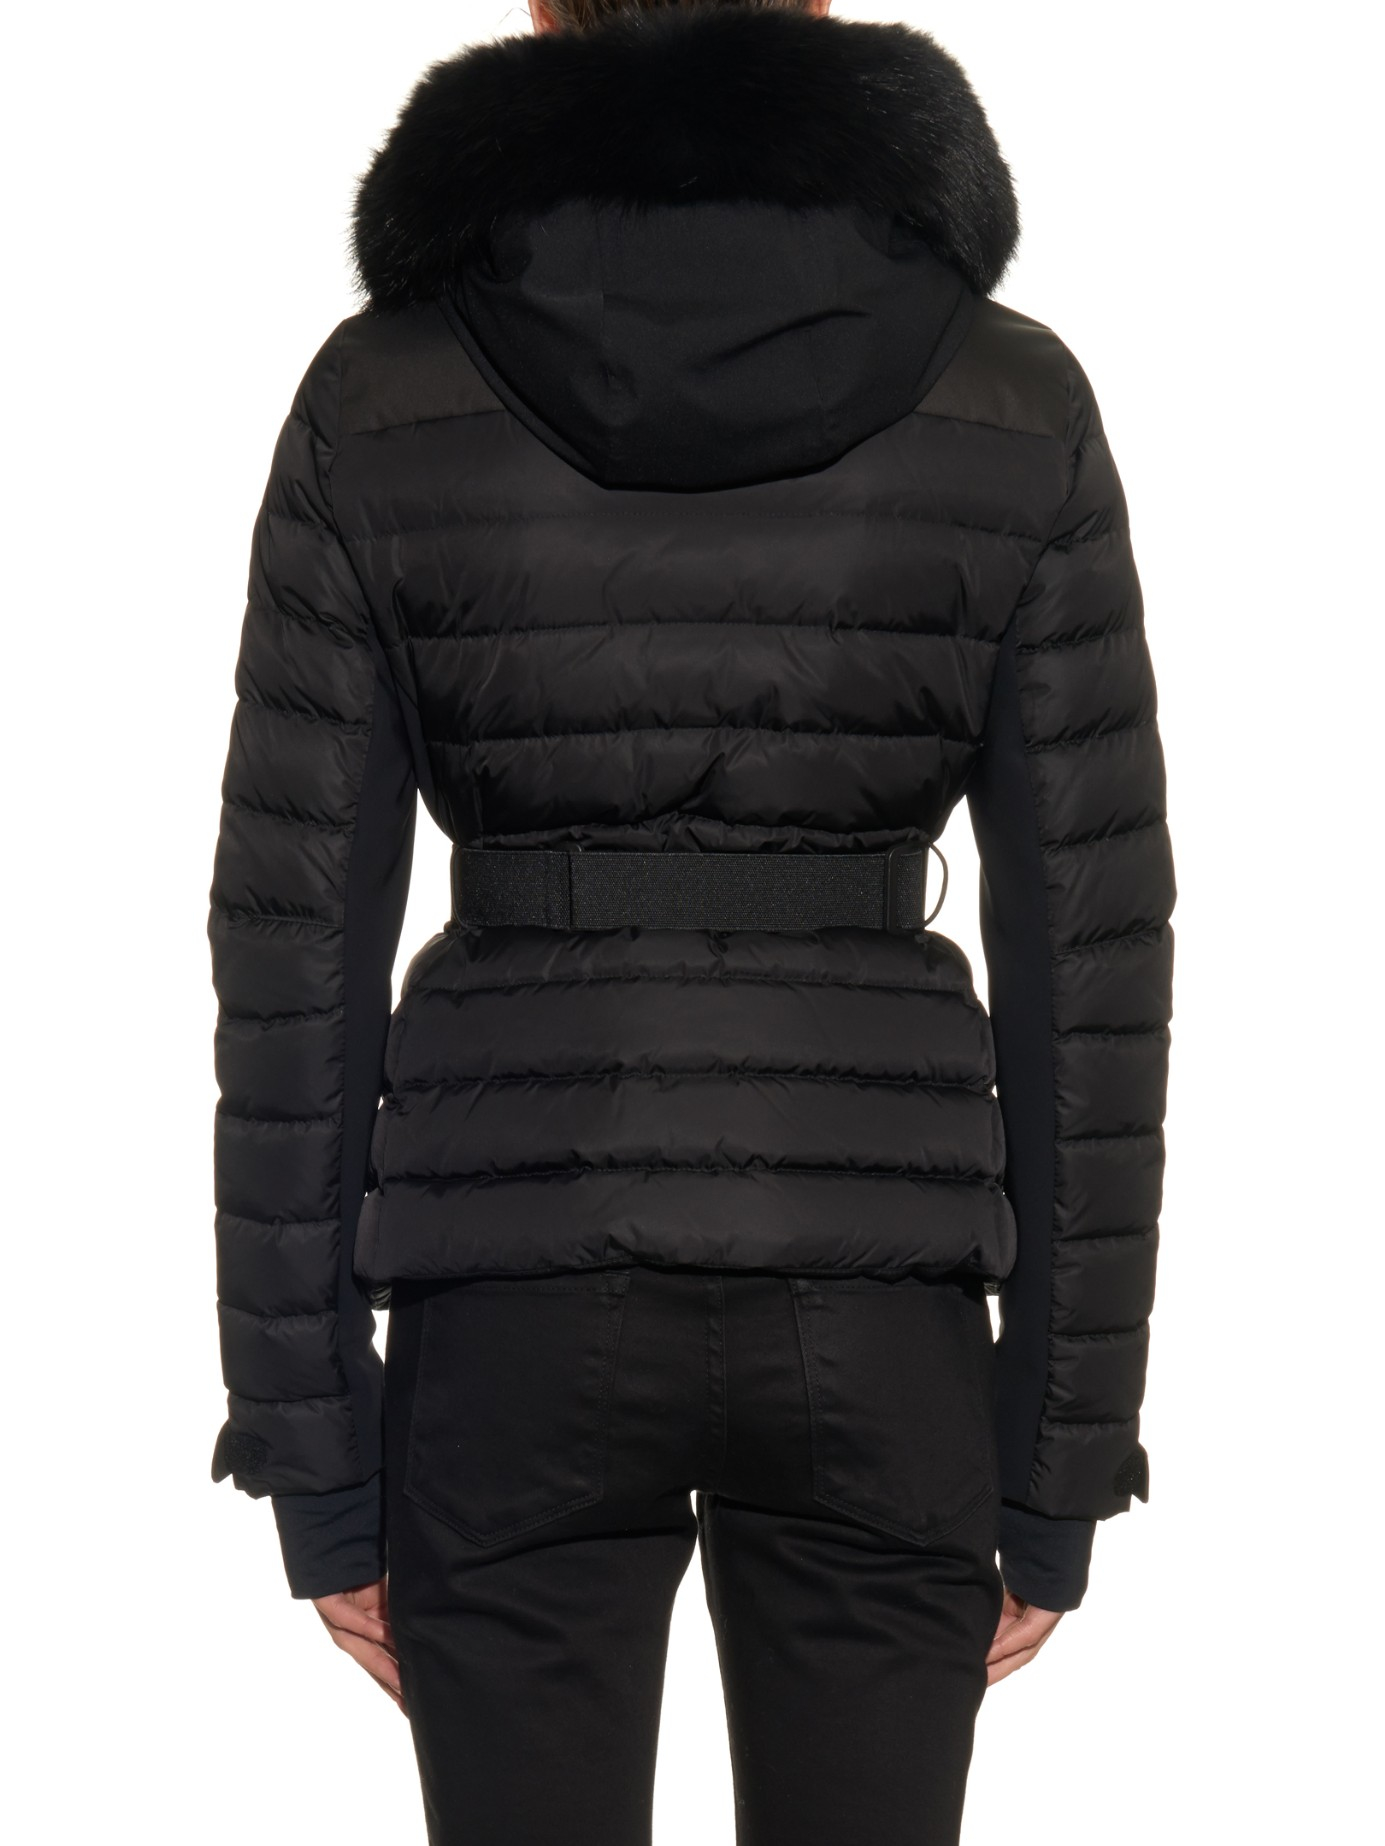 Moncler Grenoble Besse Coyote Fur Trimmed Ski Jacket In